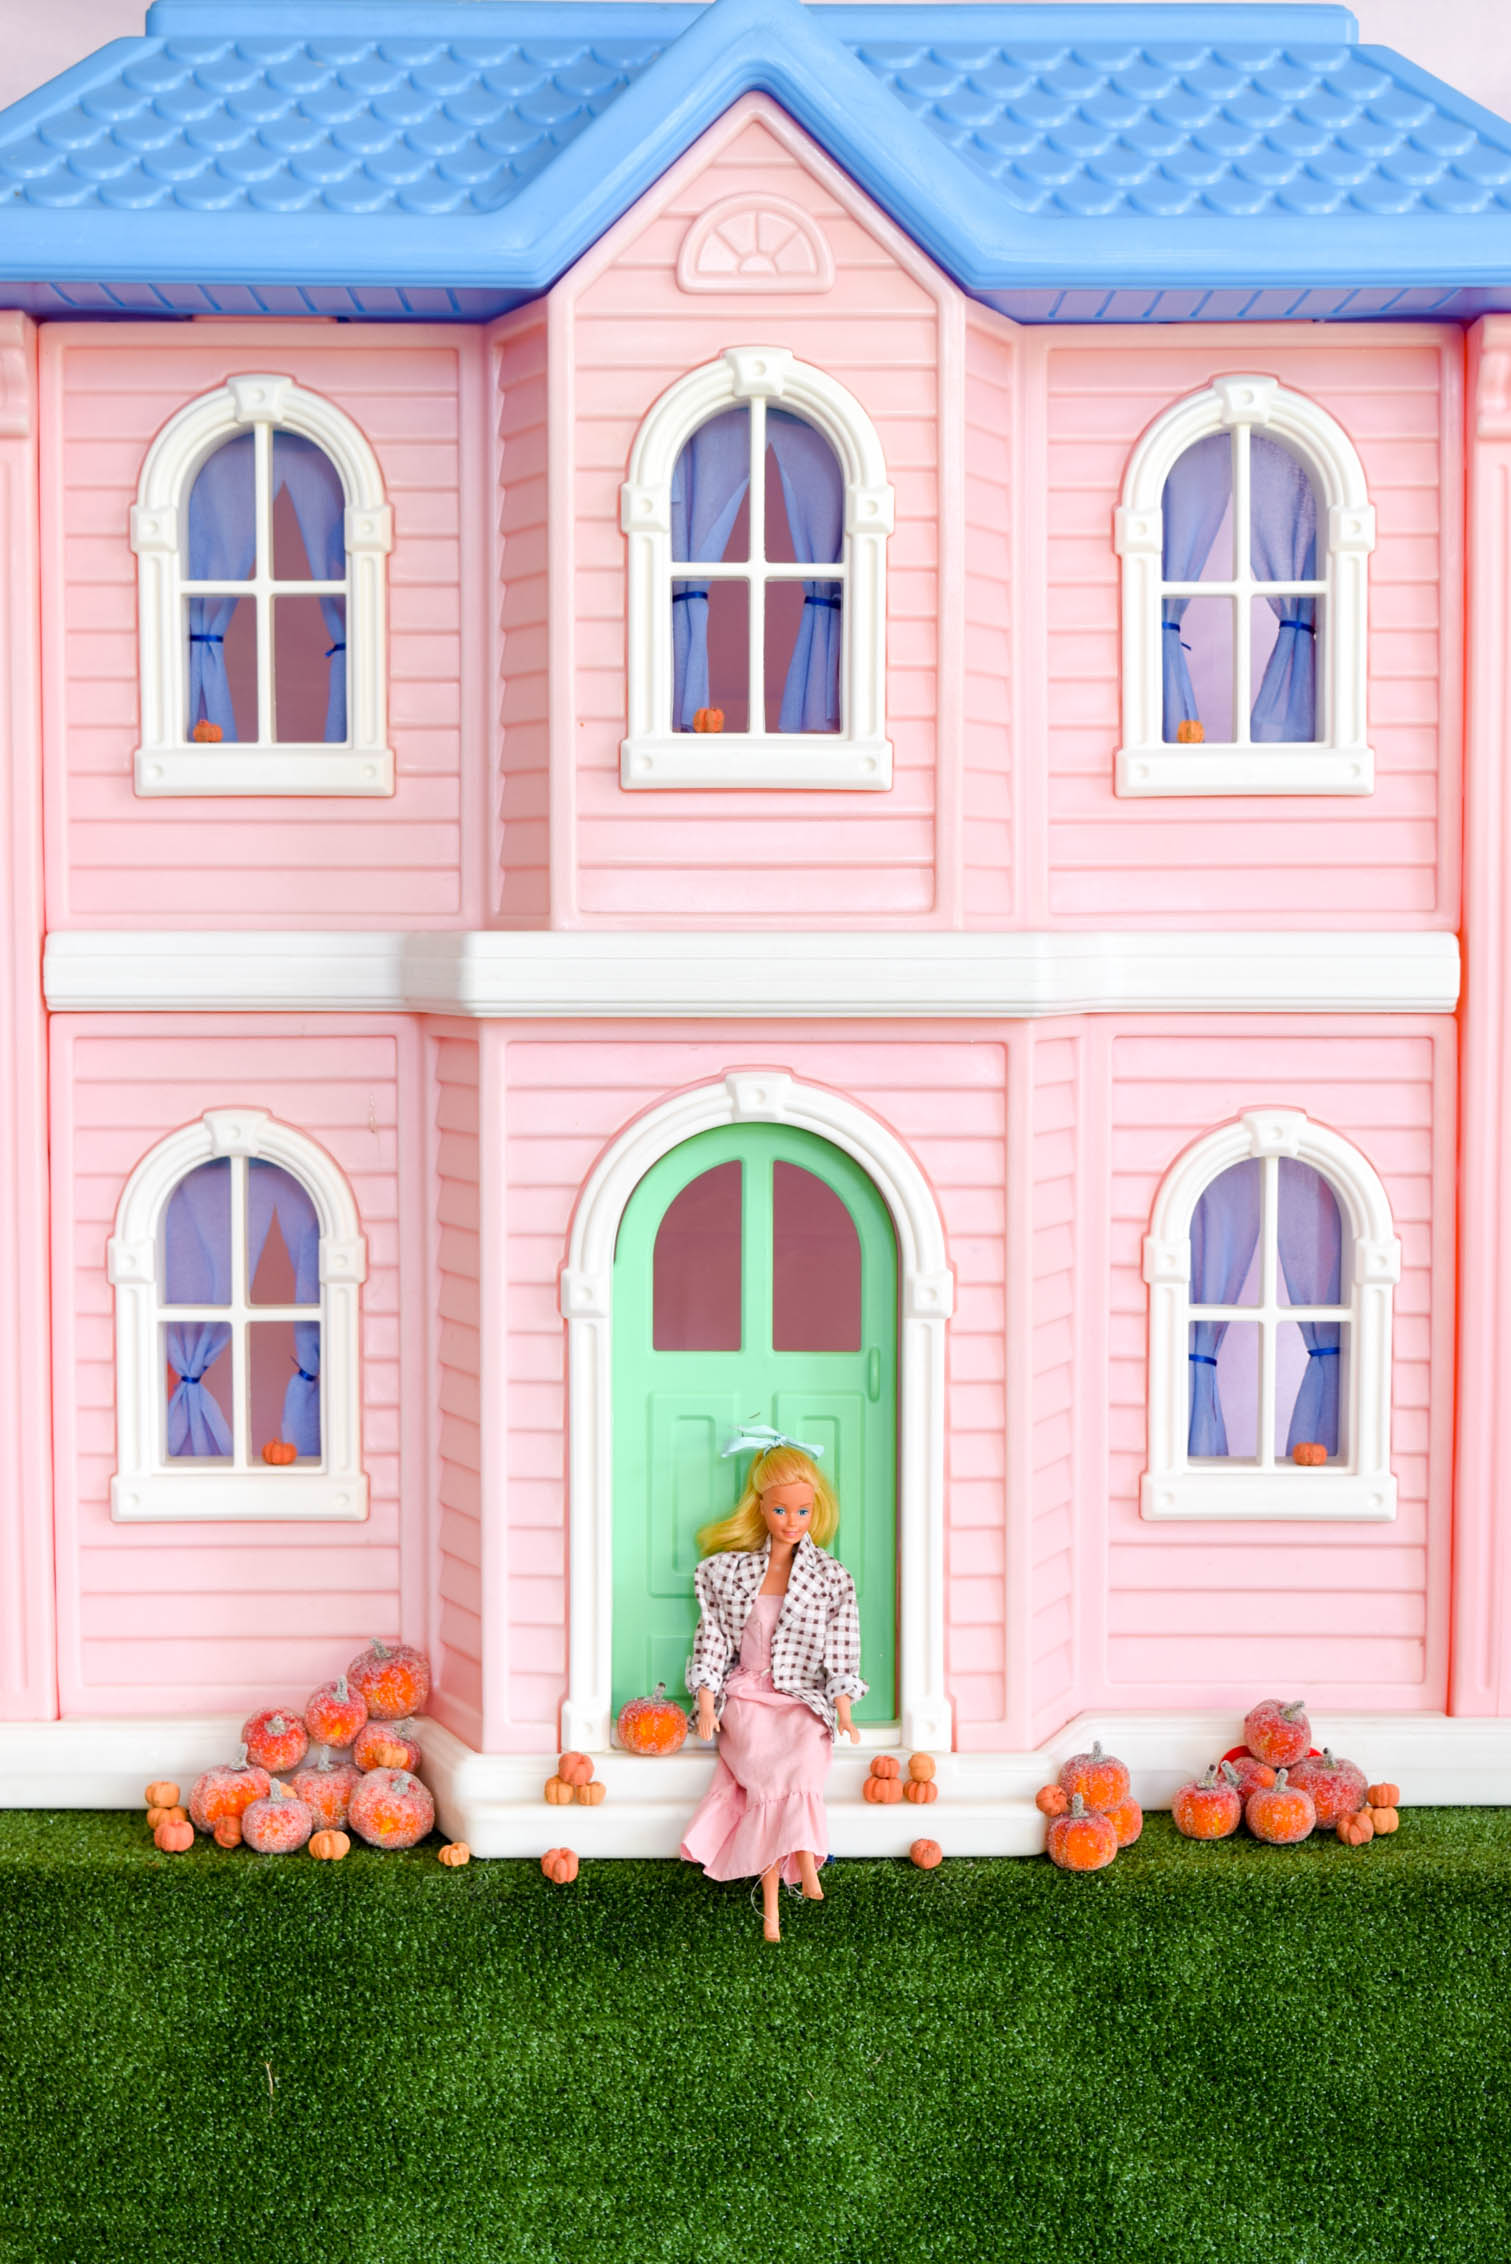 Barbie sitting on front step of large dream house with pumpkins o either side